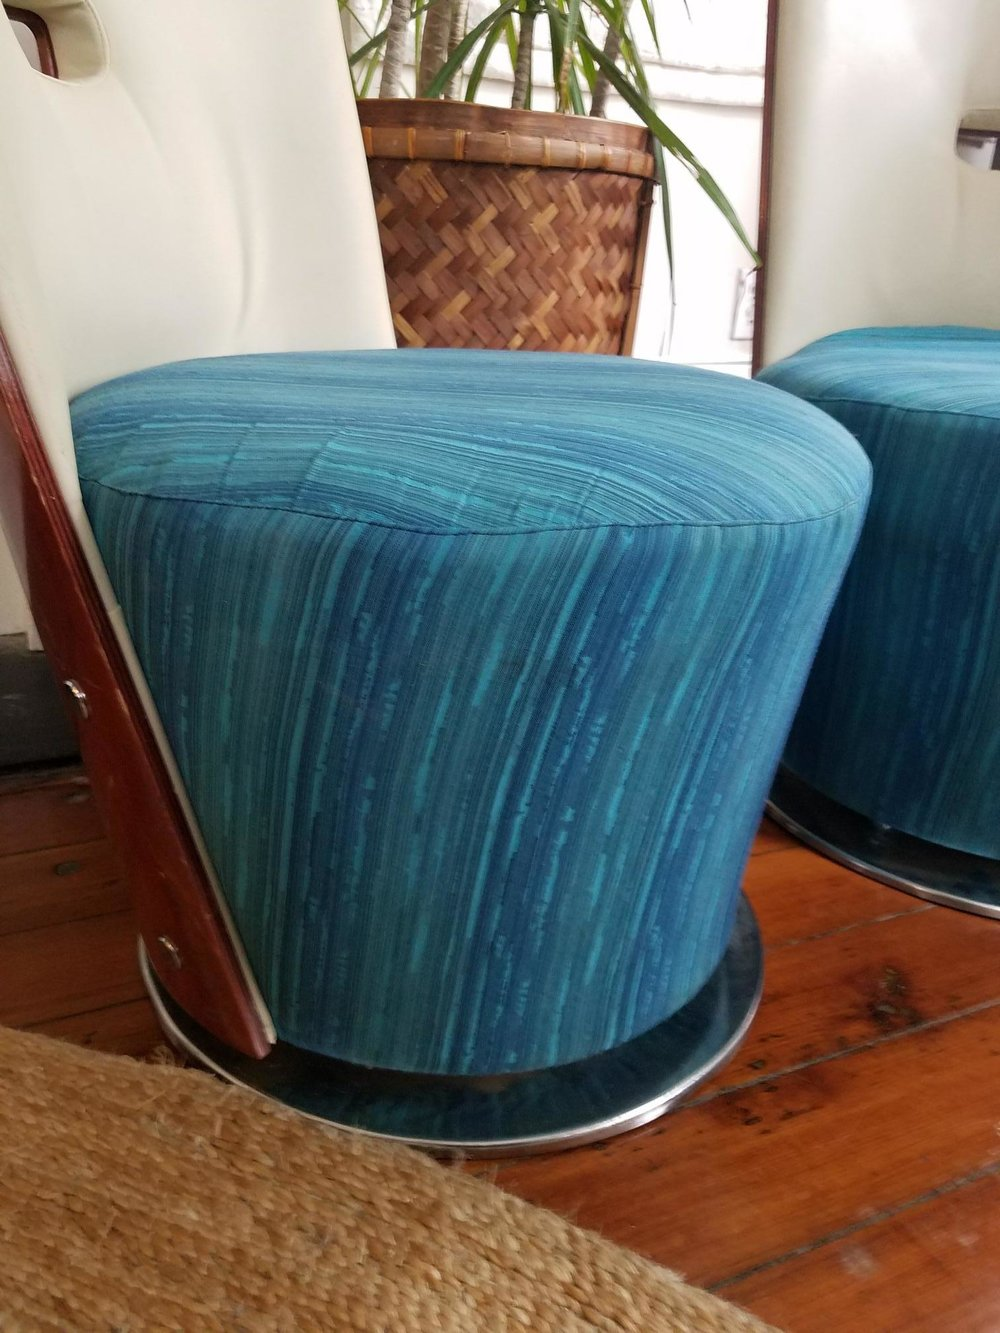 My $11 thrift store chairs.